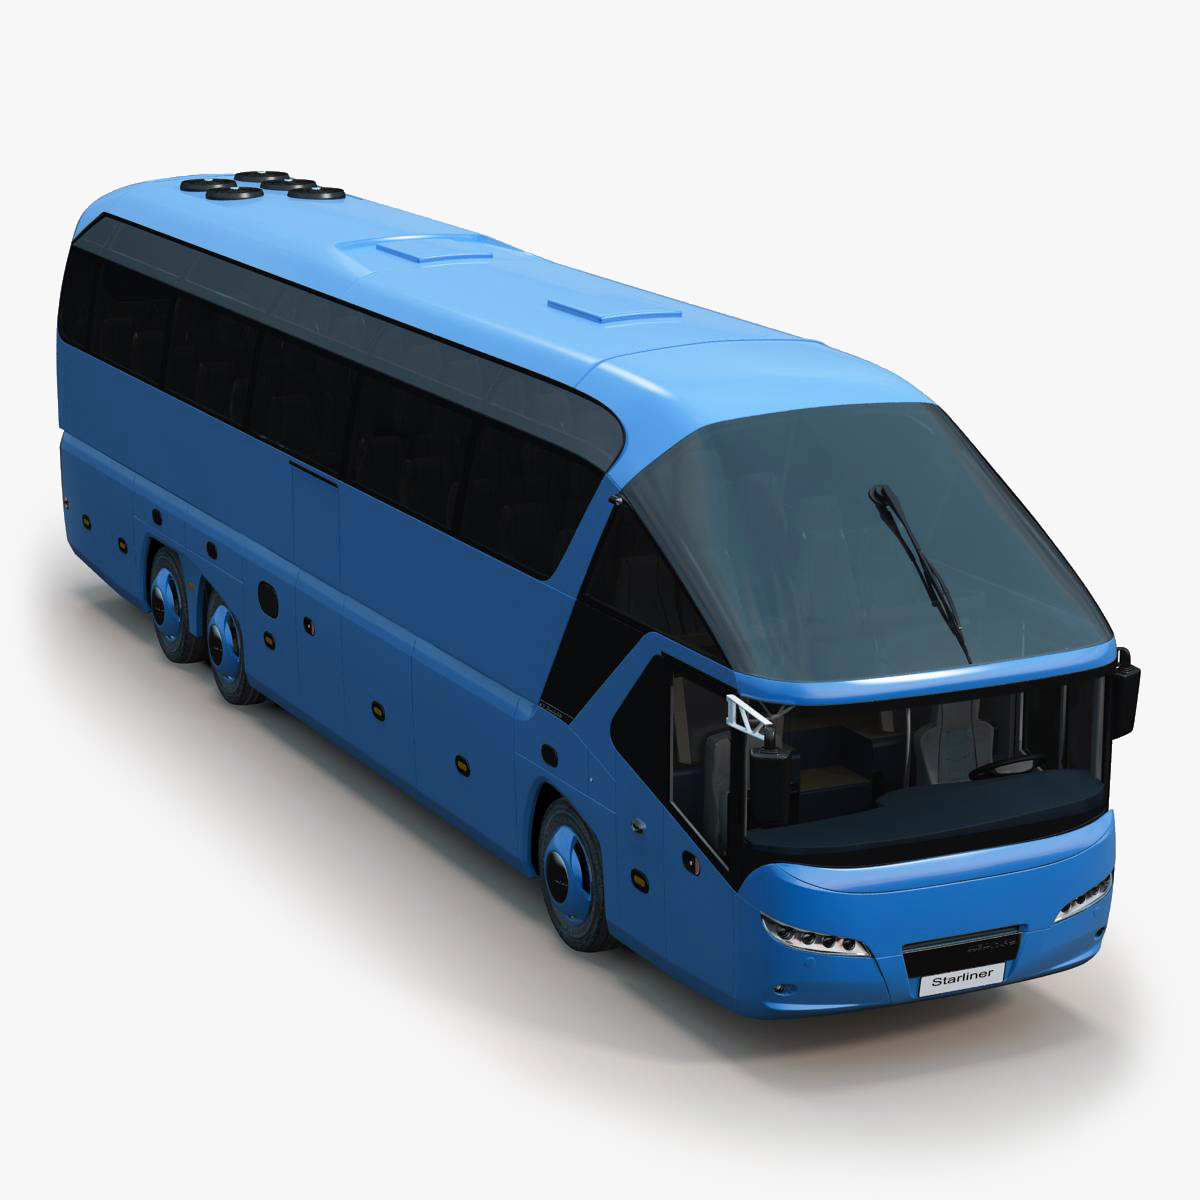 Bus_Neoplan_Starliner_00.jpg